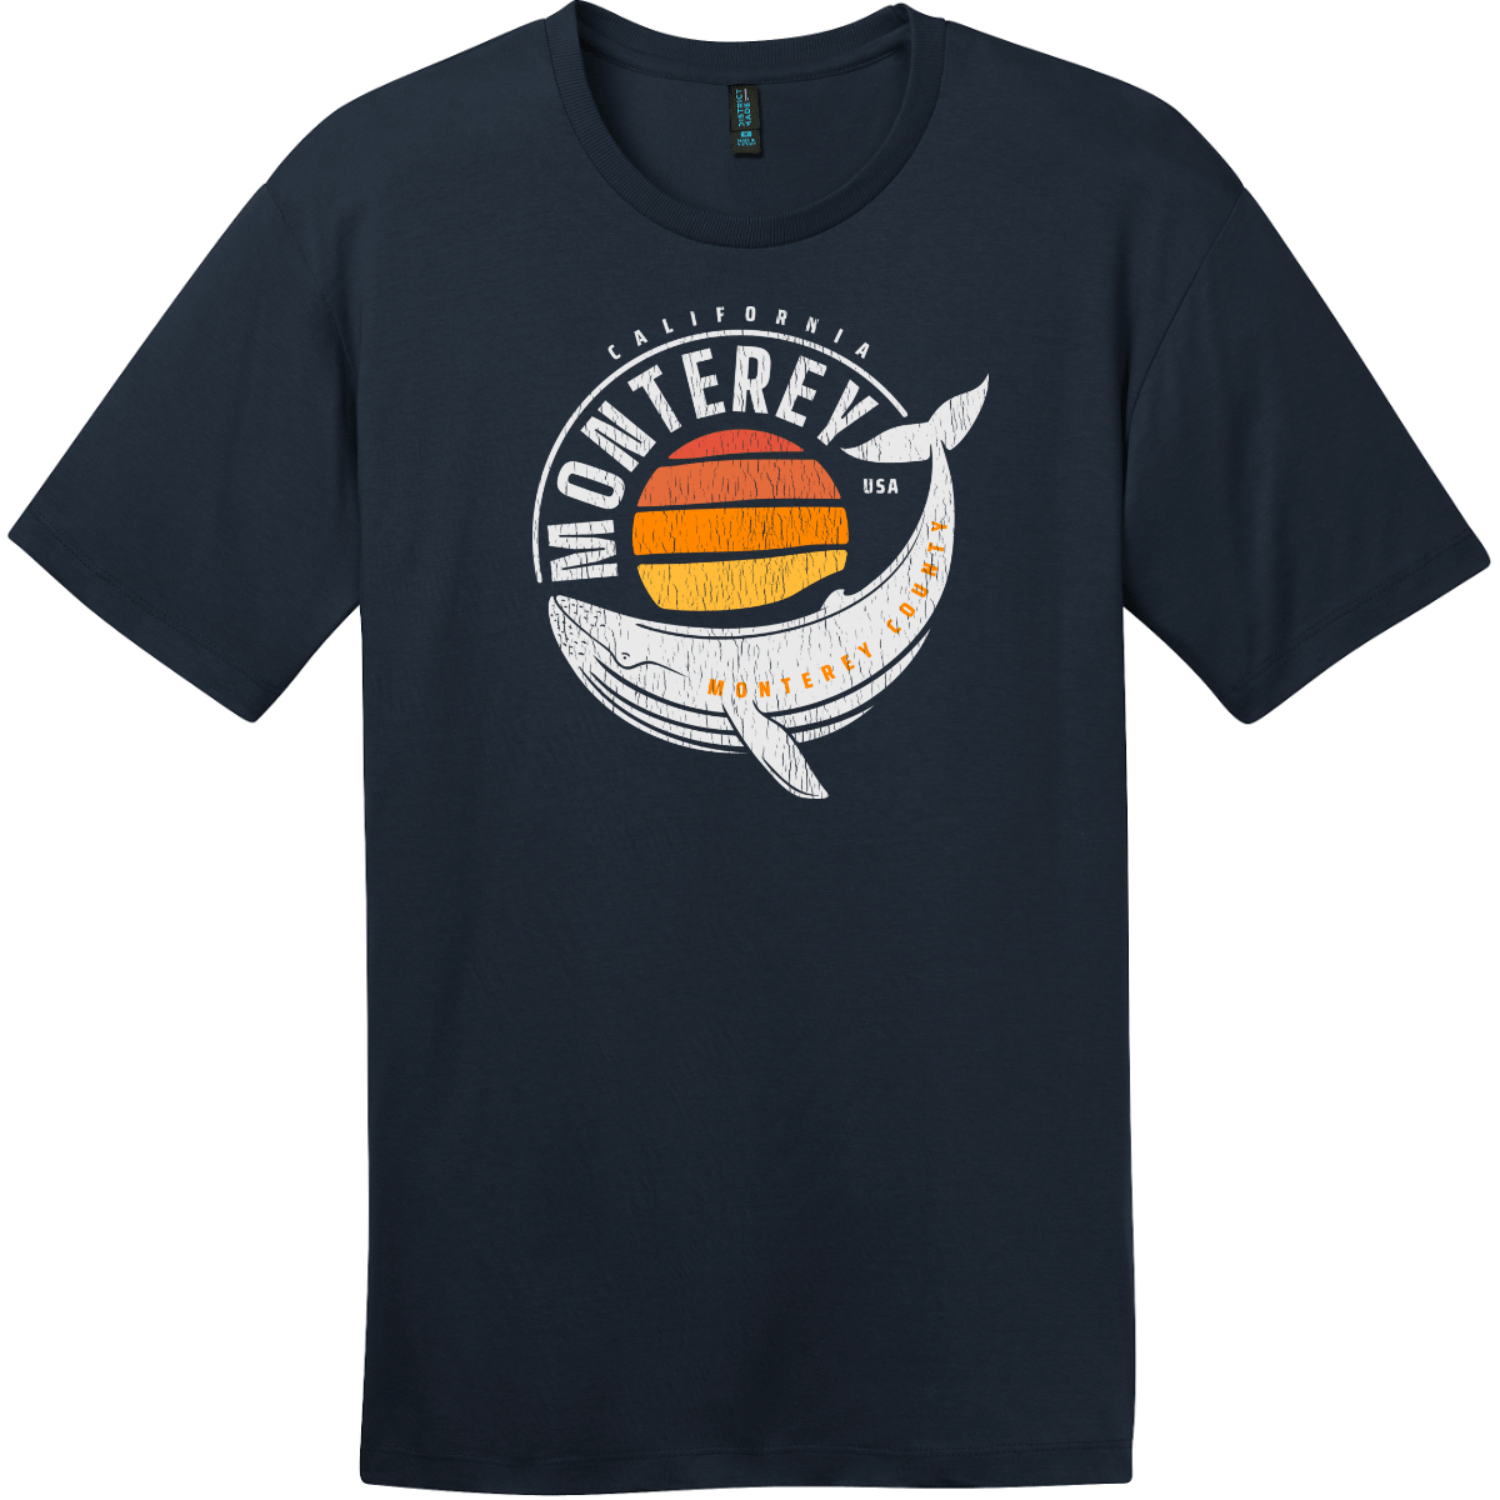 Monterey California Whale T-Shirt New Navy District Perfect Weight Tee DT104